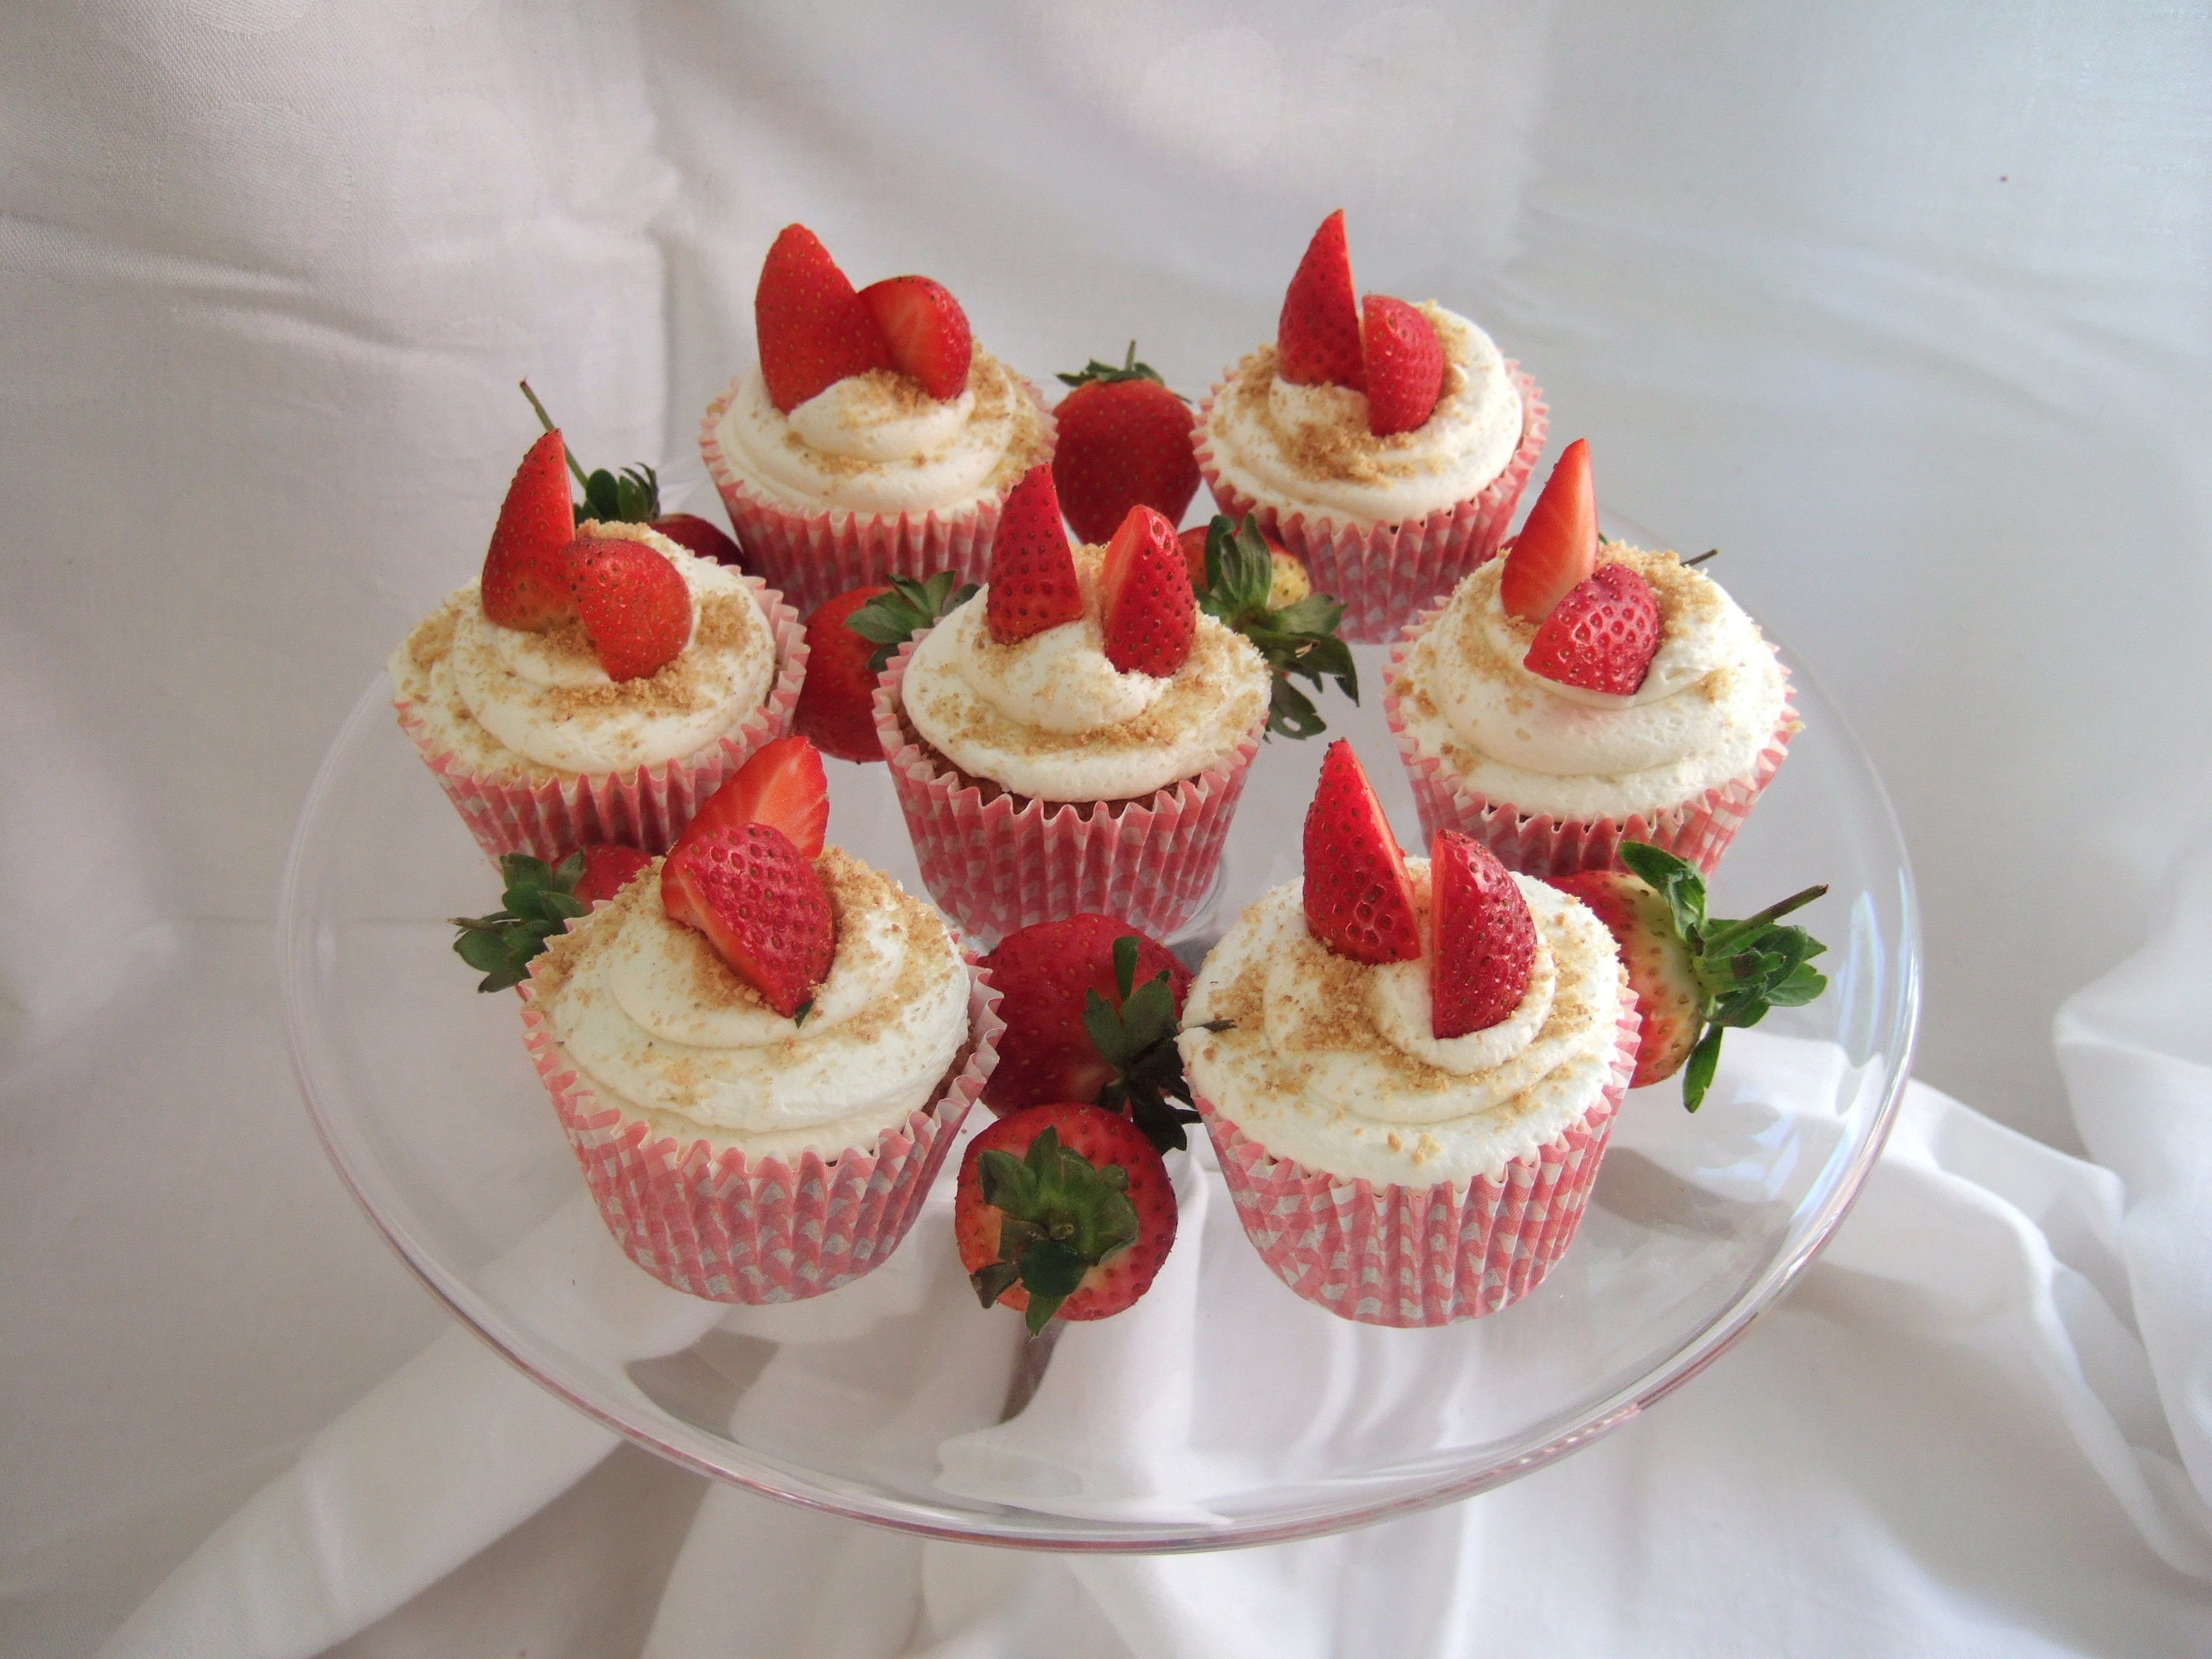 Strawberry 'Cheesecake' Cupcakes – Summer Is Here! | Tasty ...